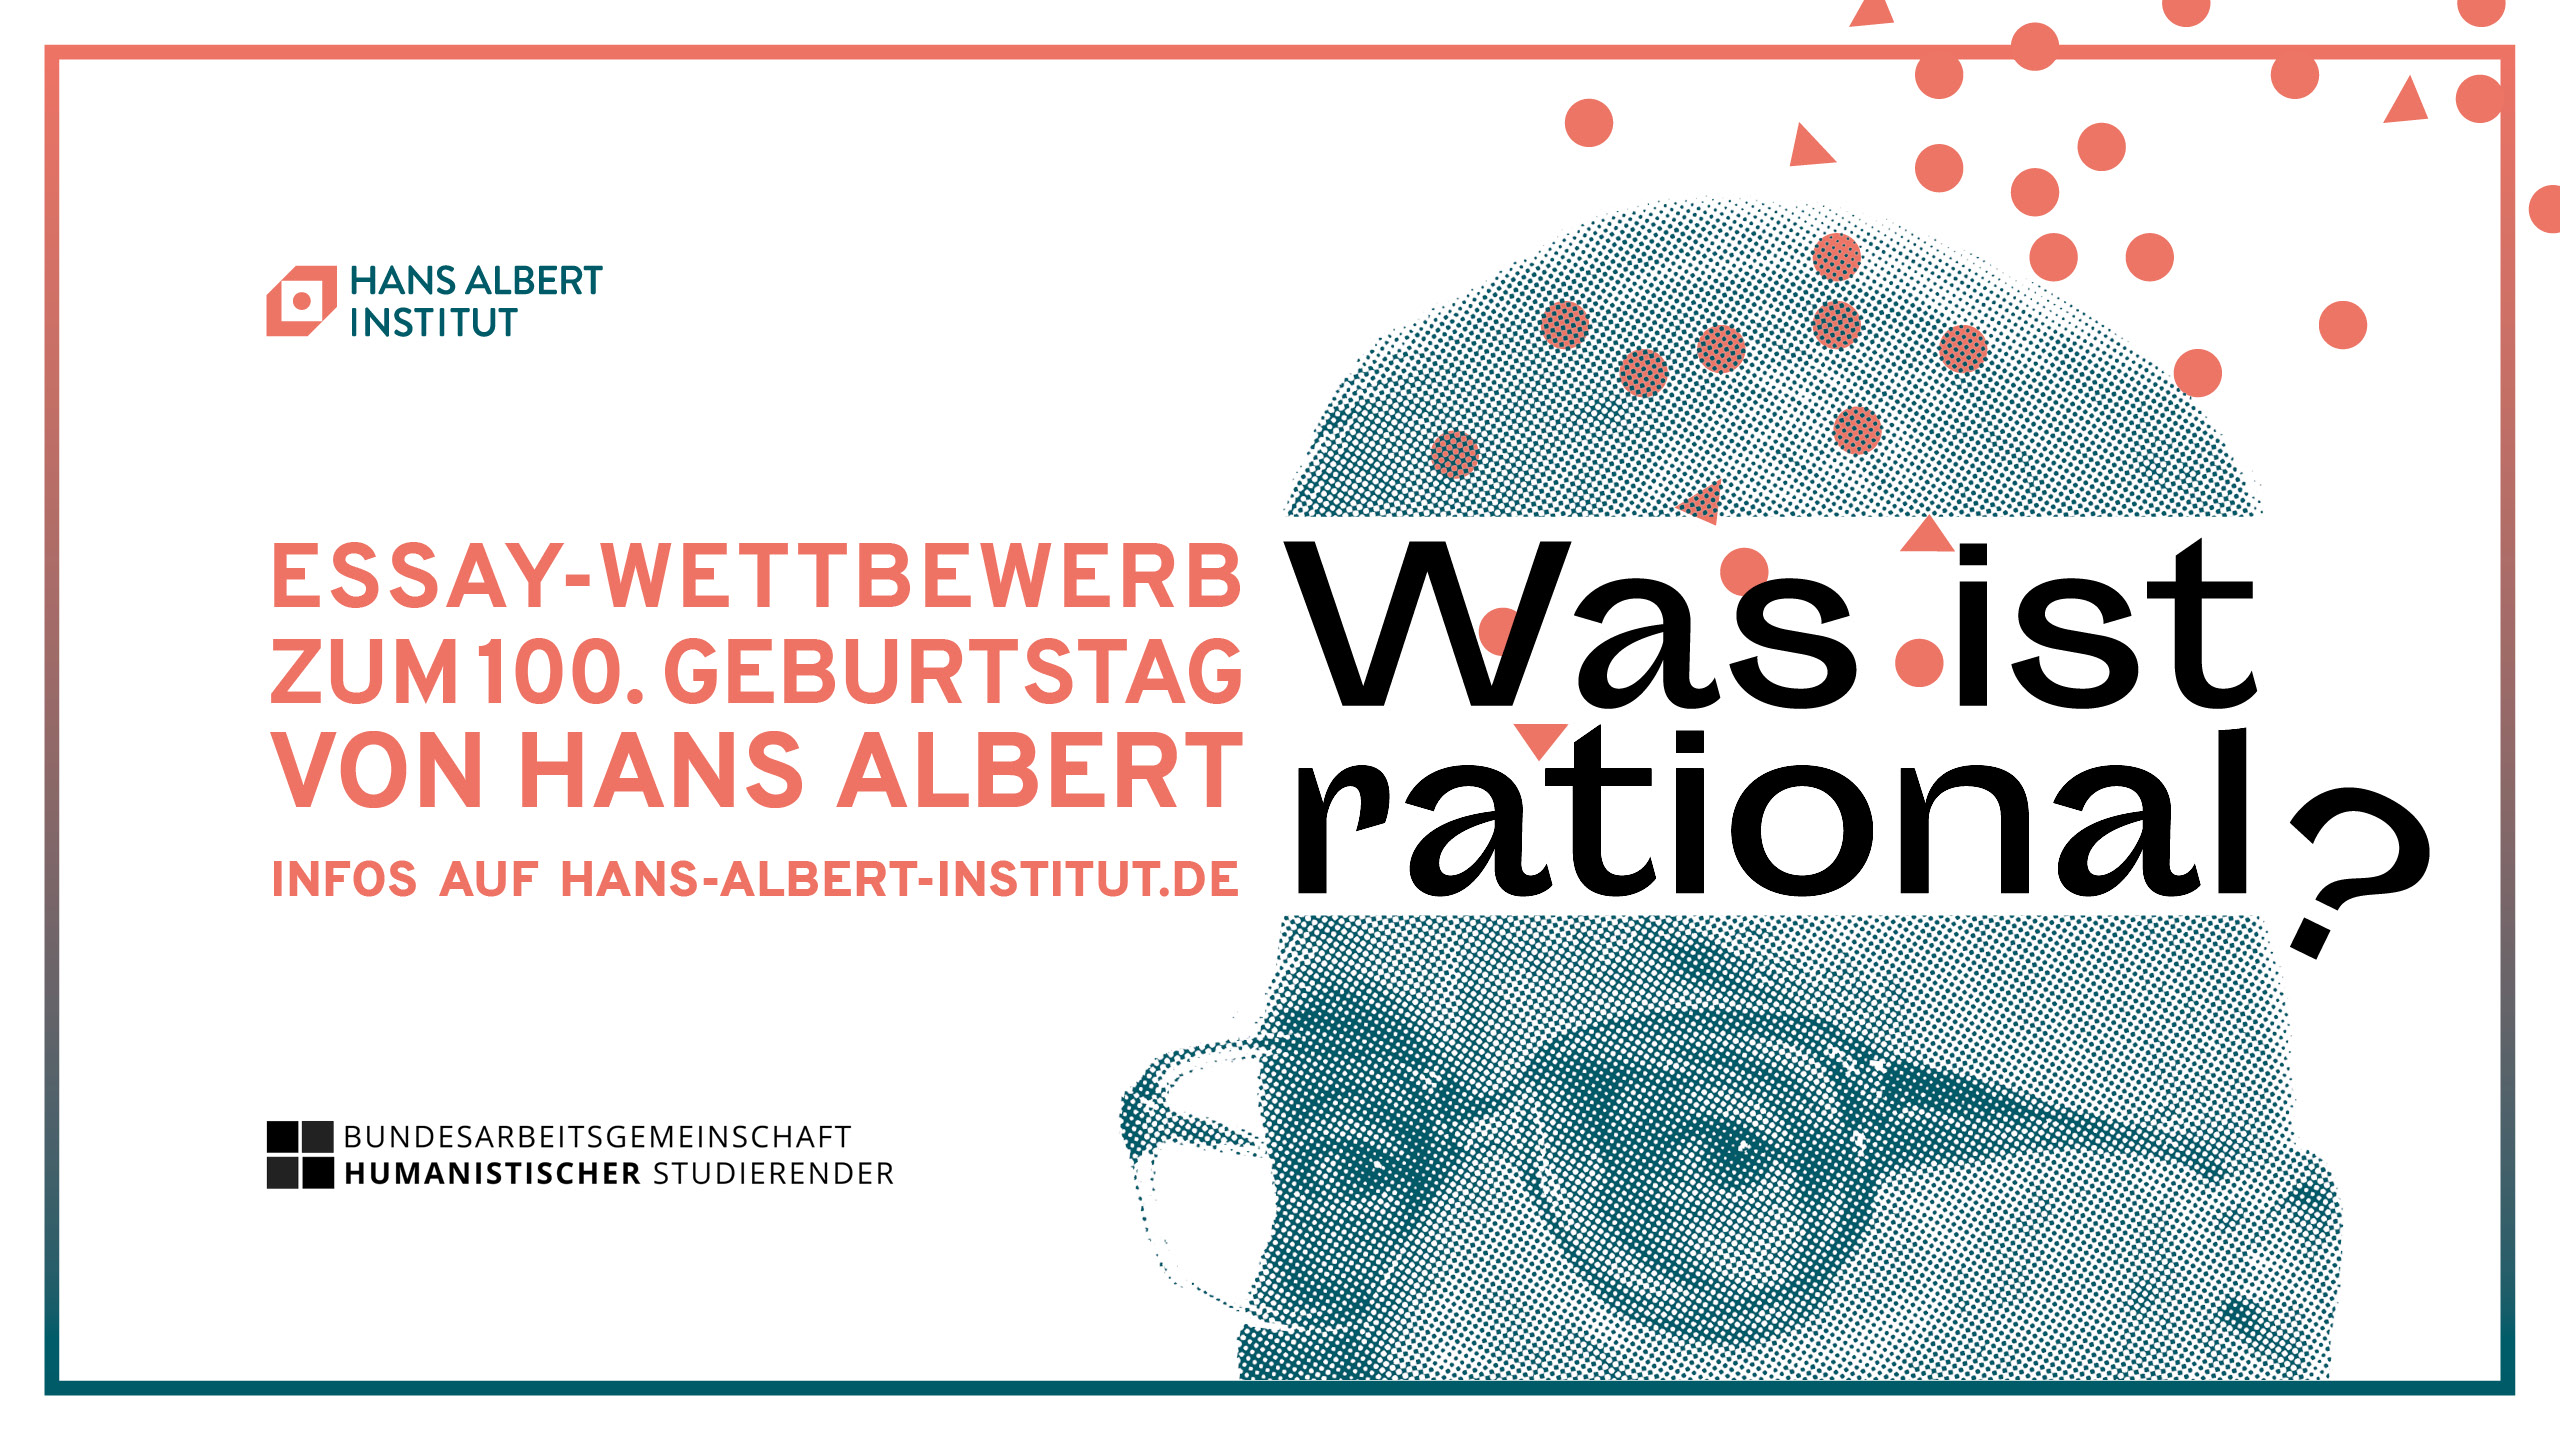 """Was ist rational?"""